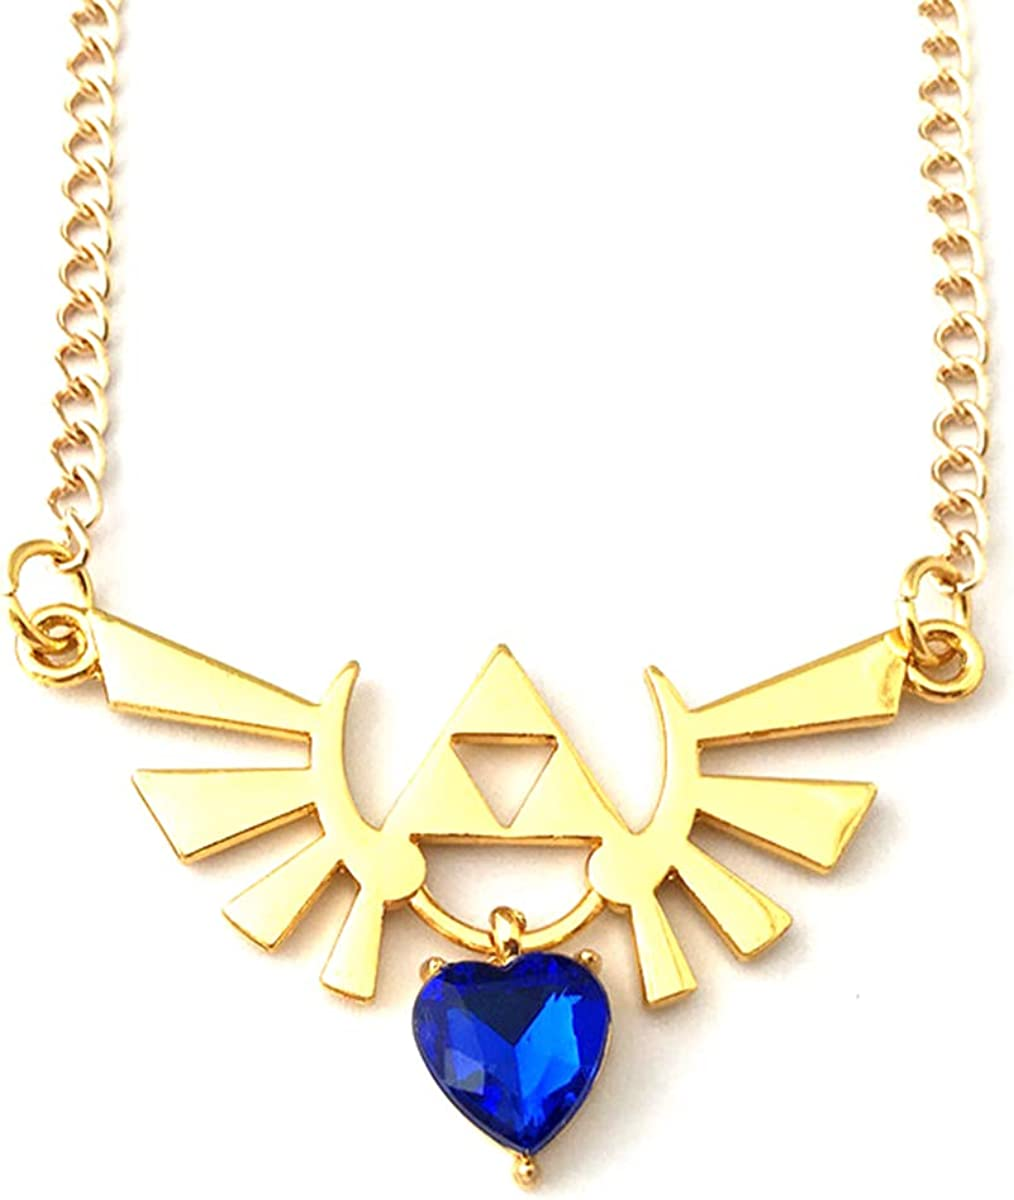 HBSWUI TV Movies Show Original Design Quality Anime Cosplay Jewelry Cartoons The Legend of Zeld Hylian Necklace Gifts for Men Woman